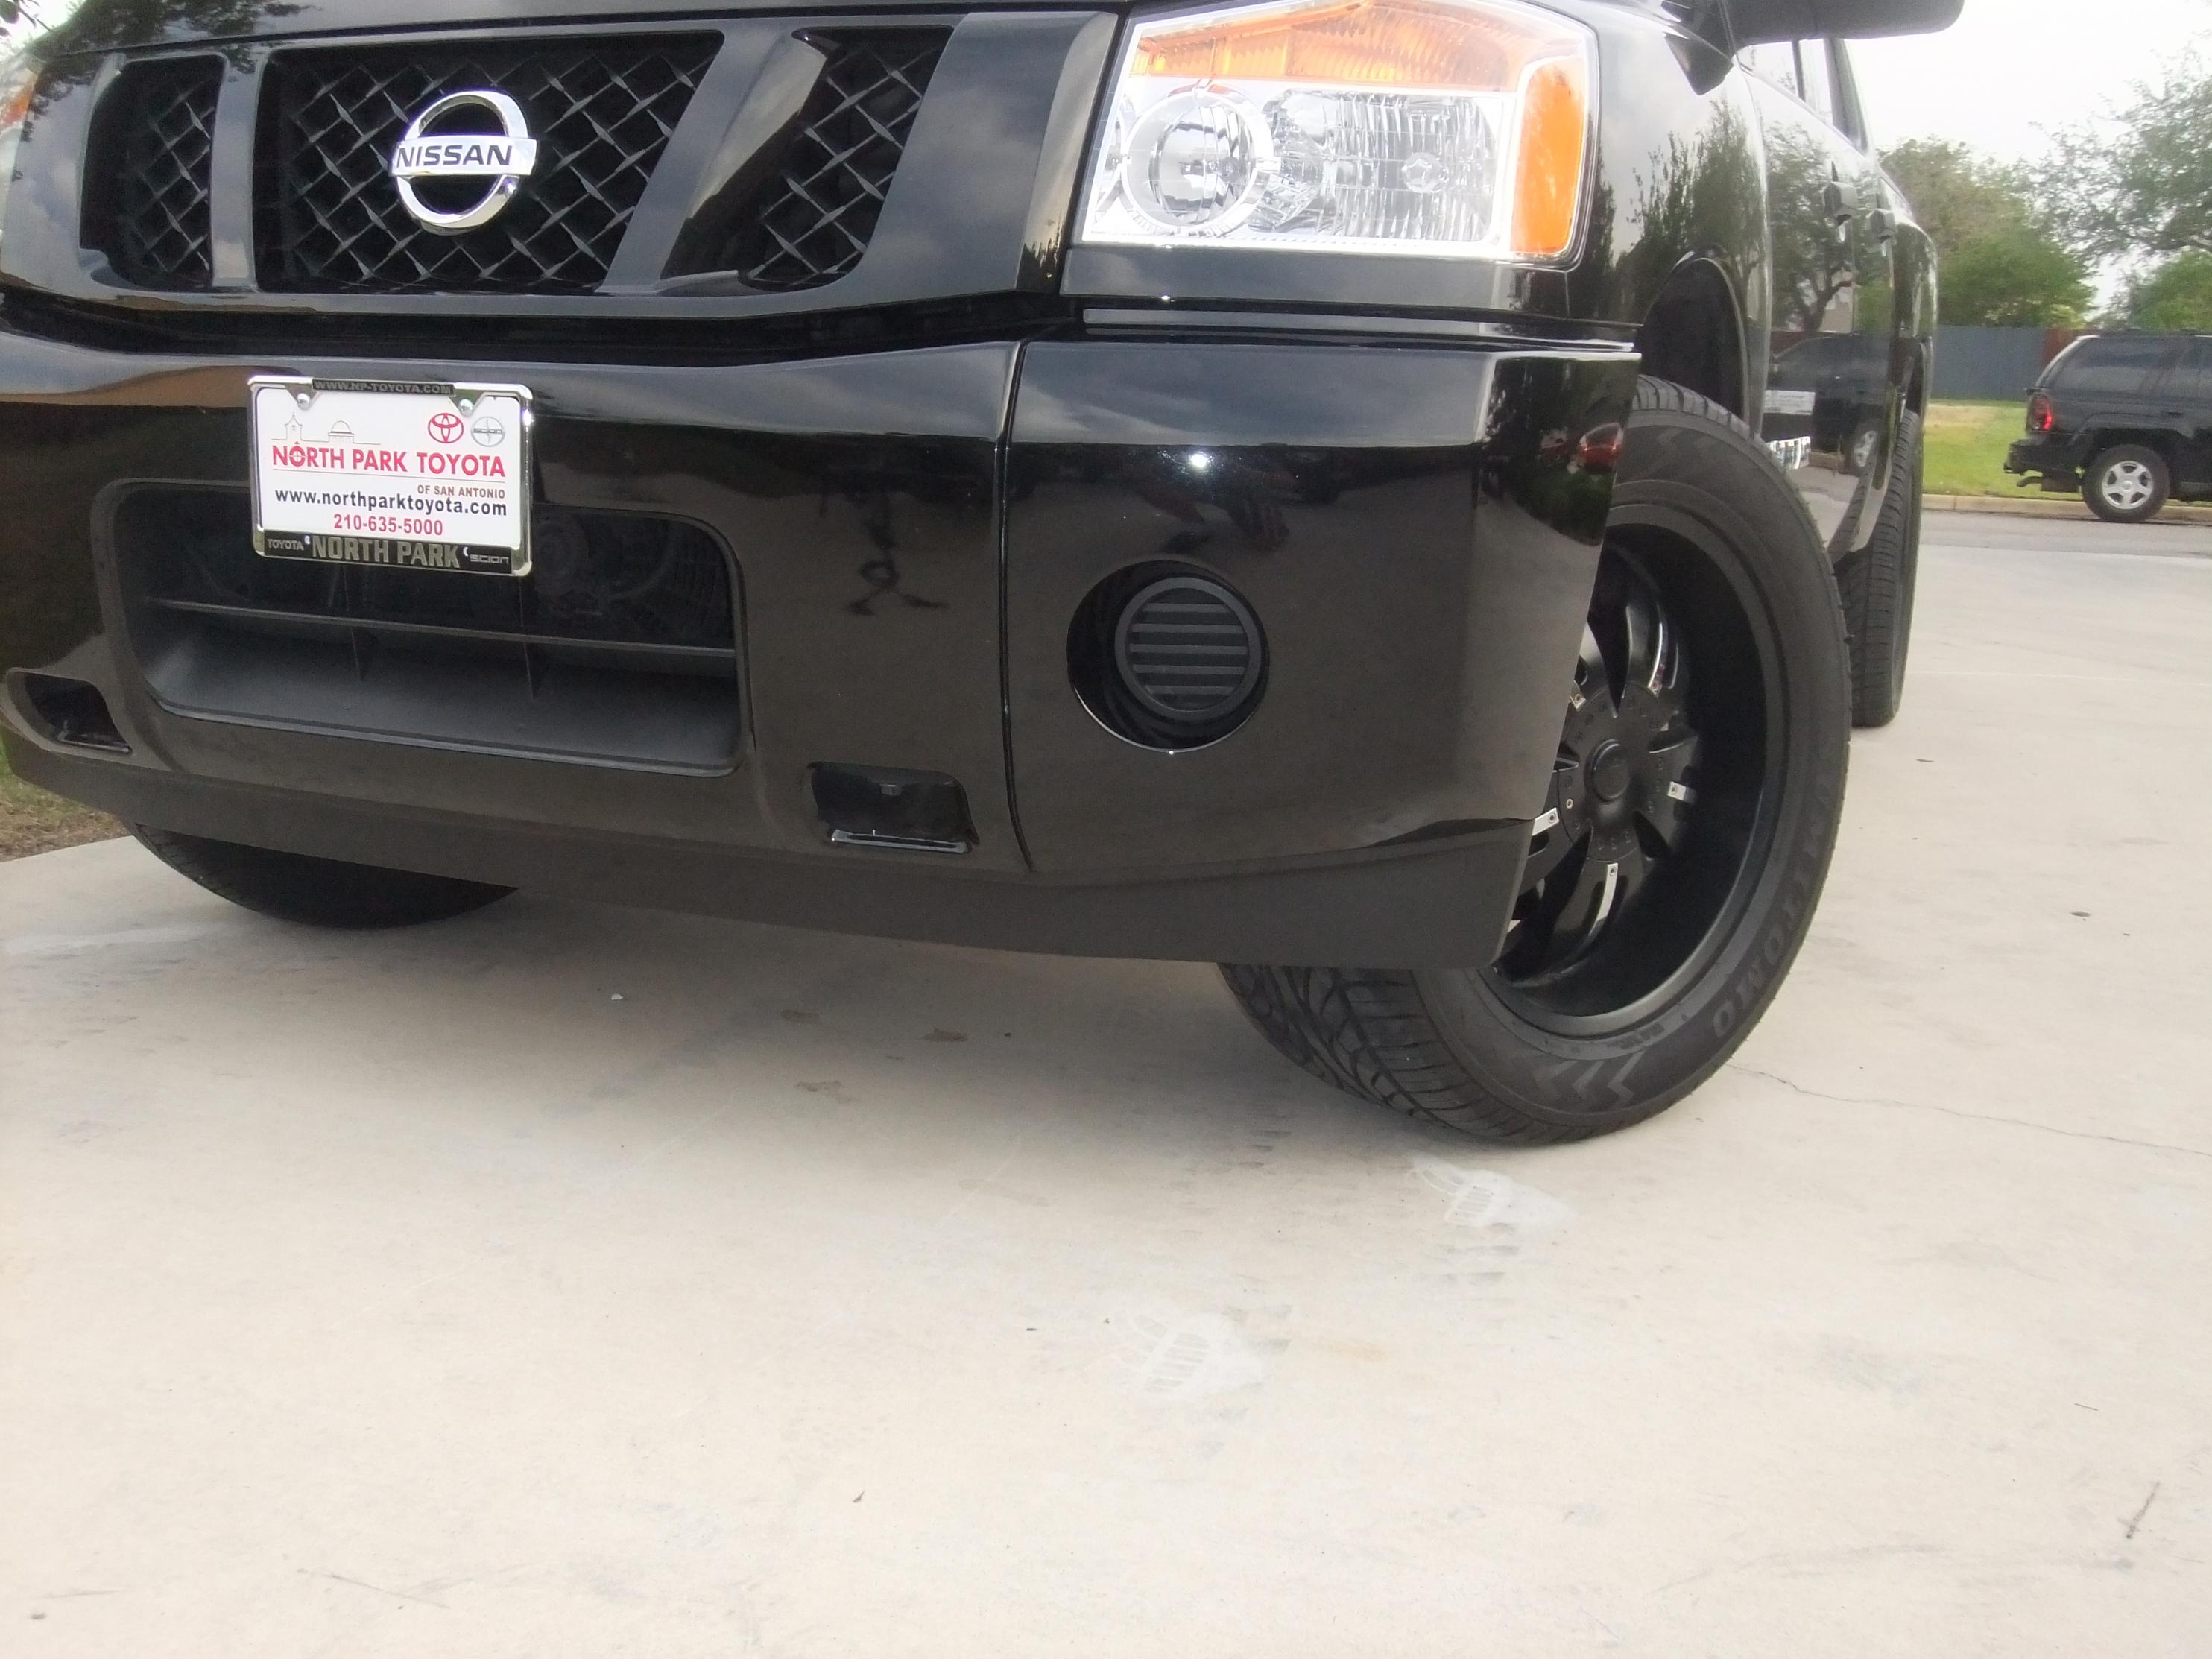 nissan discussion forum titans san titan antonio forums general